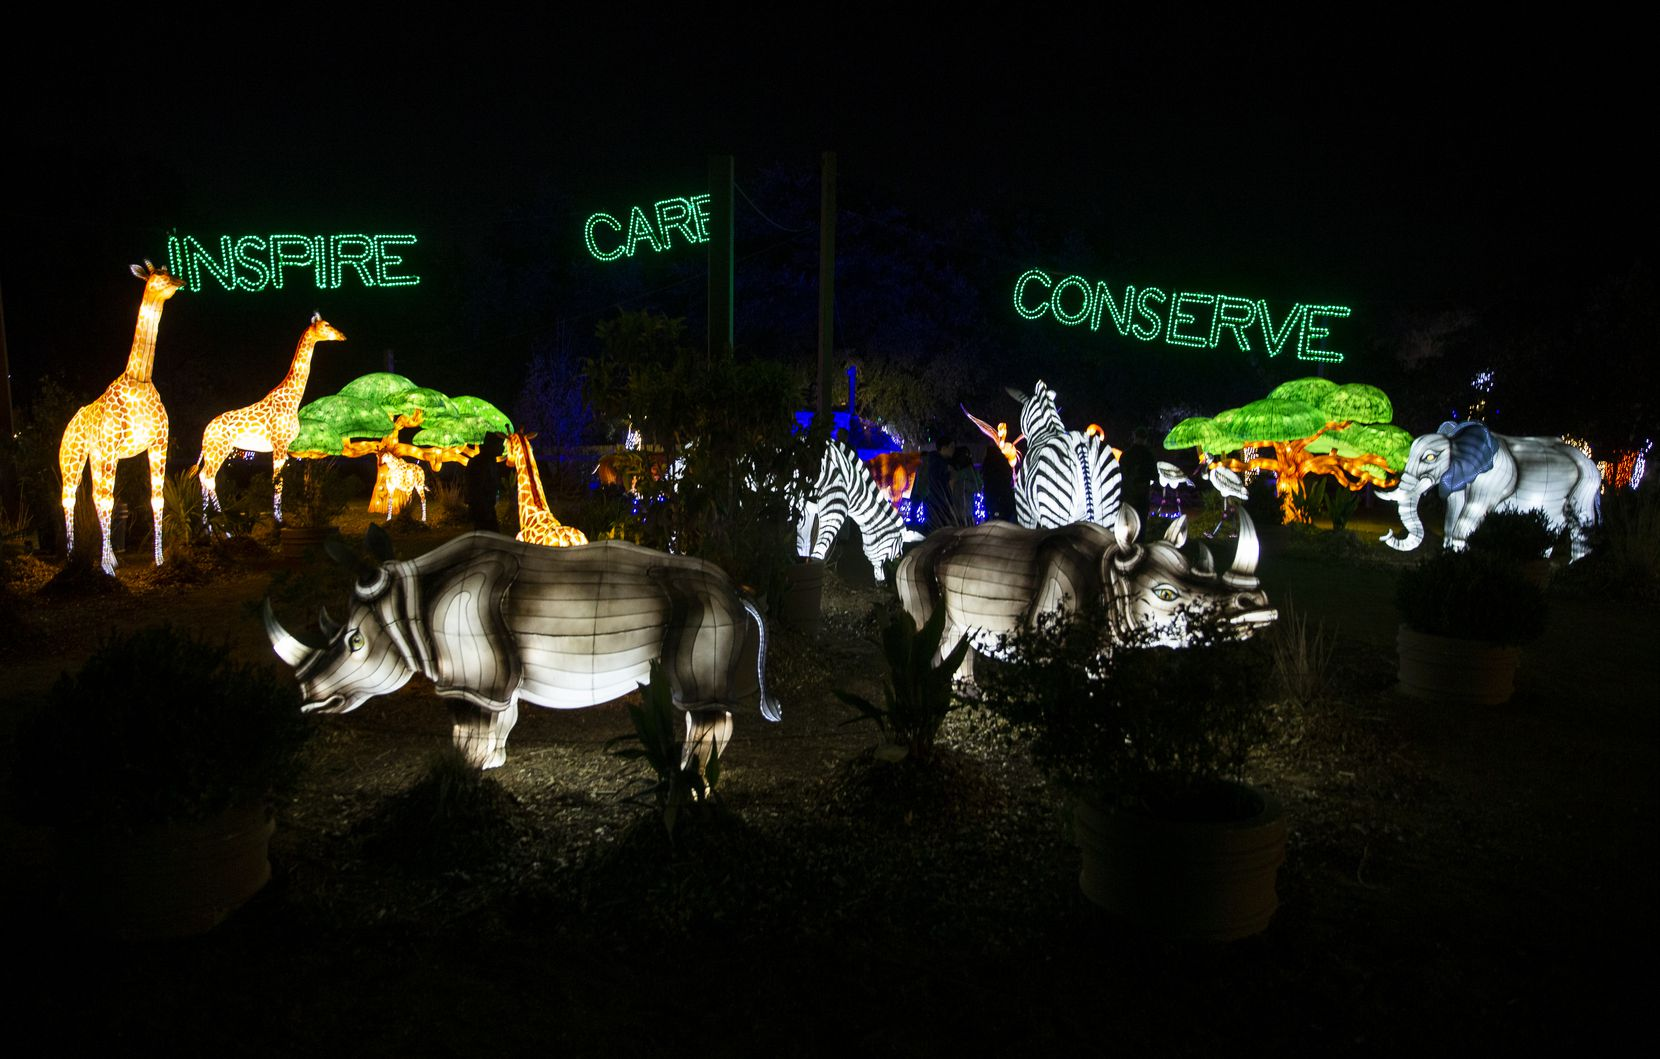 The Dallas Zoo will have more than 1 million lights, including animal-shaped lanterns, illuminating the ZooNorth section through Jan. 5.